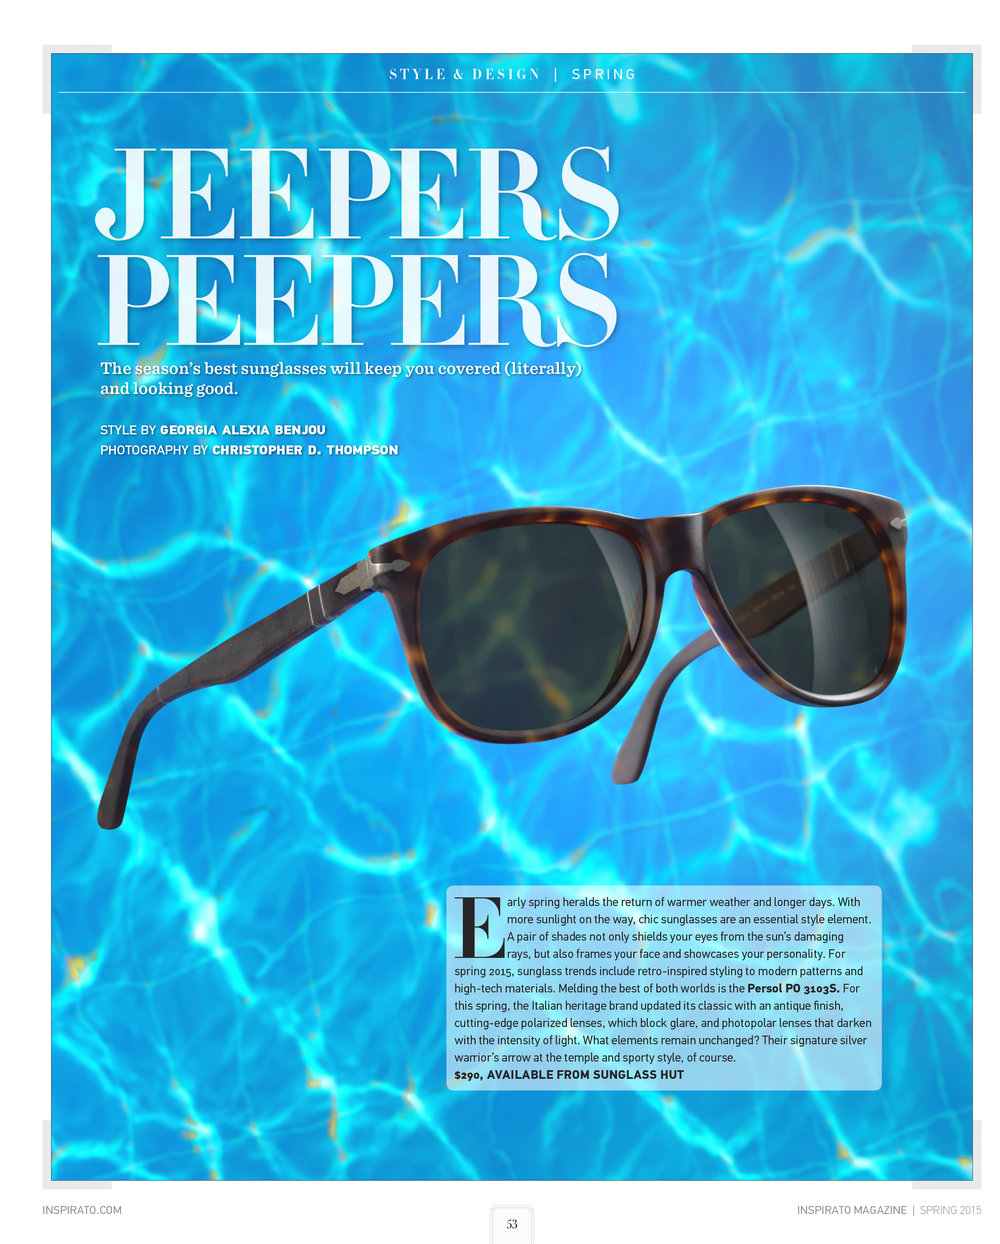 Sunglasses for Inspirato Magazine